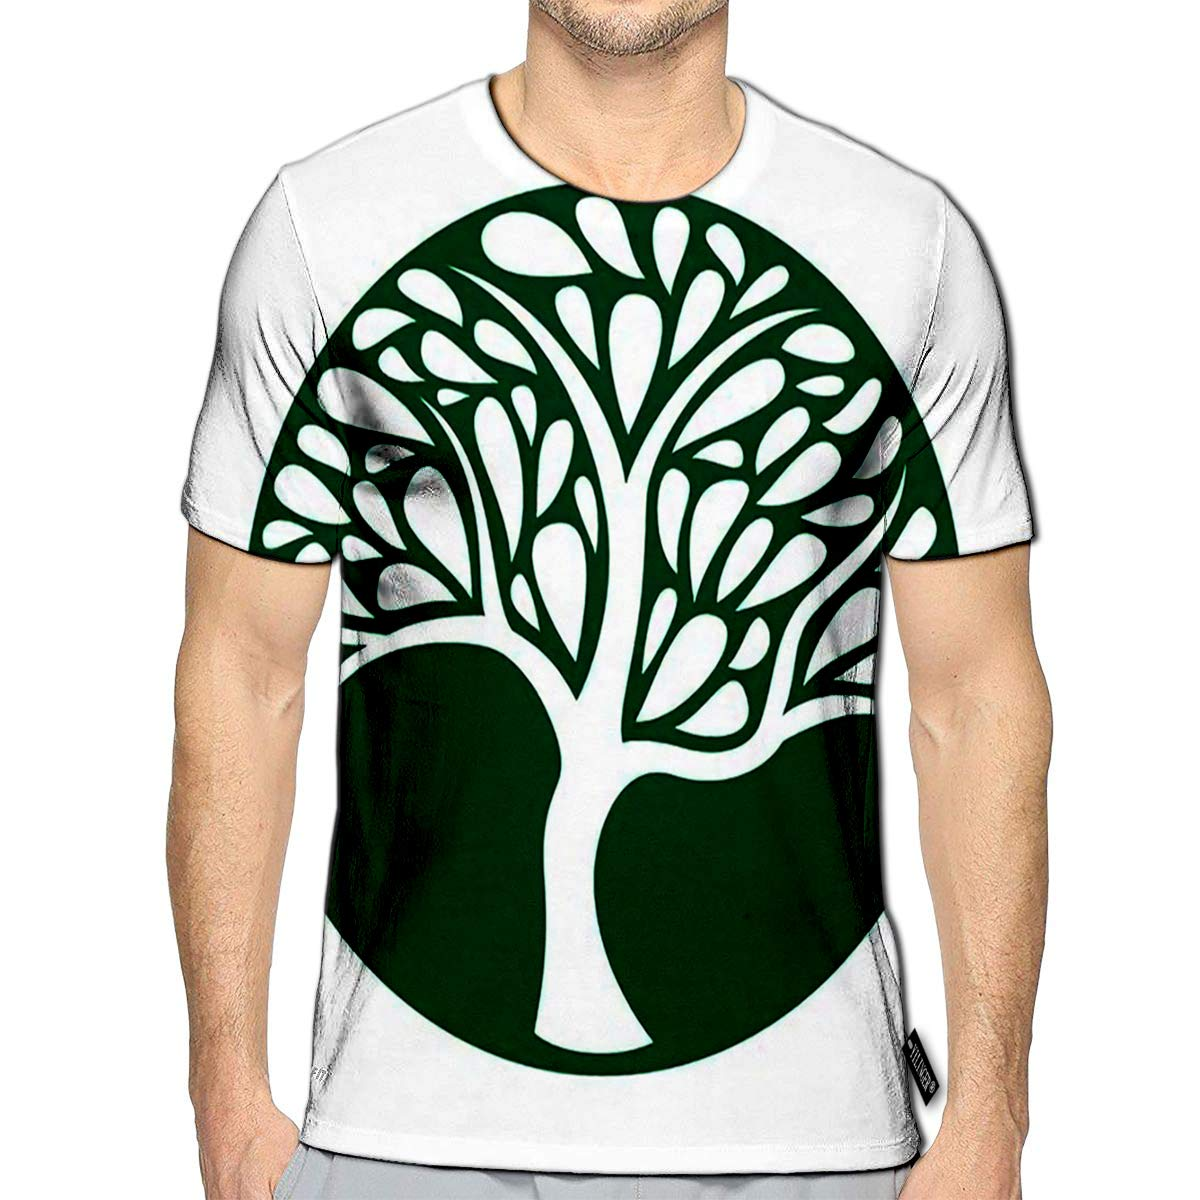 3D Printed T-Shirts Ornament Tree Icon On Green Short Sleeve Tops Tees